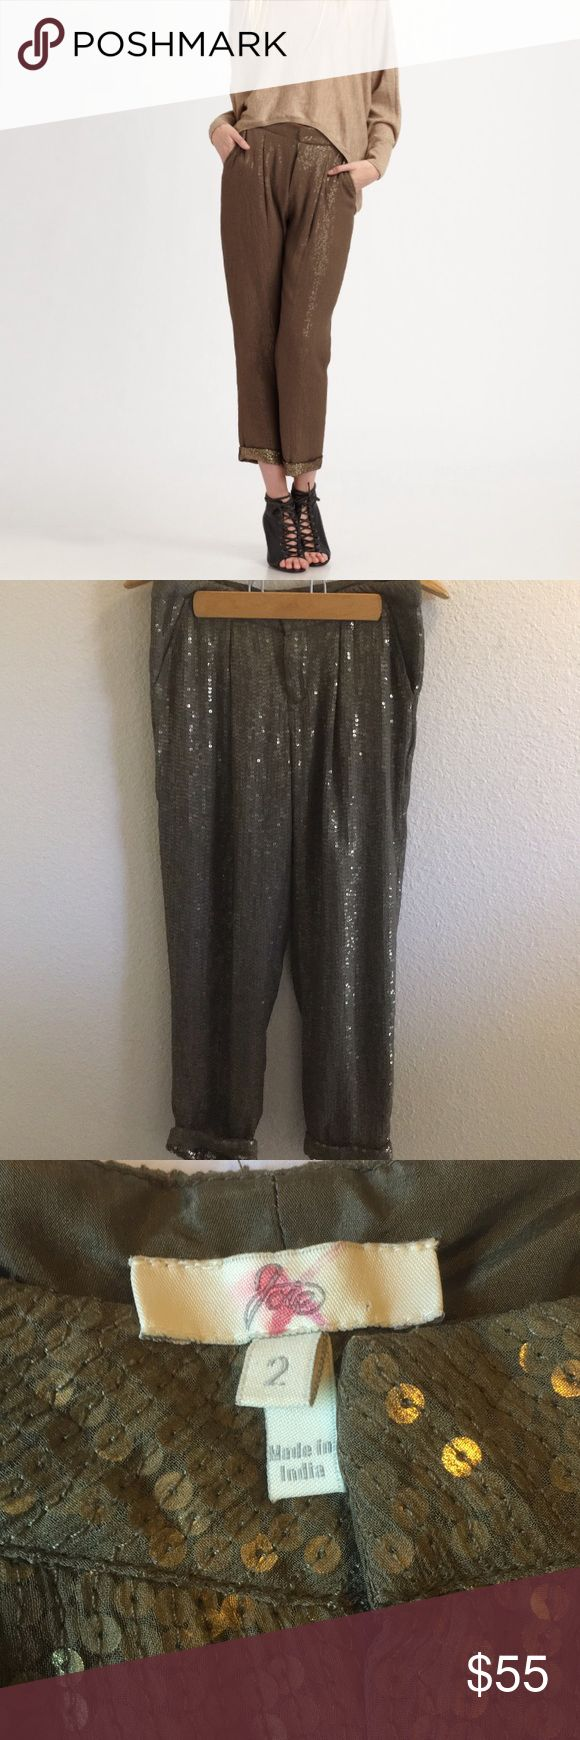 Sequined Joie Trousers Sequined olive green trouser pants by Joie. Zips up at the front with hook closure. Pockets on the sides. No flaws, freshly dry cleaned. 100% silk. I ship daily - excluding Sundays and holidays - and I store items in a smoke free, pet free environment. Open to offers; bundles discounted! Joie Pants Trousers